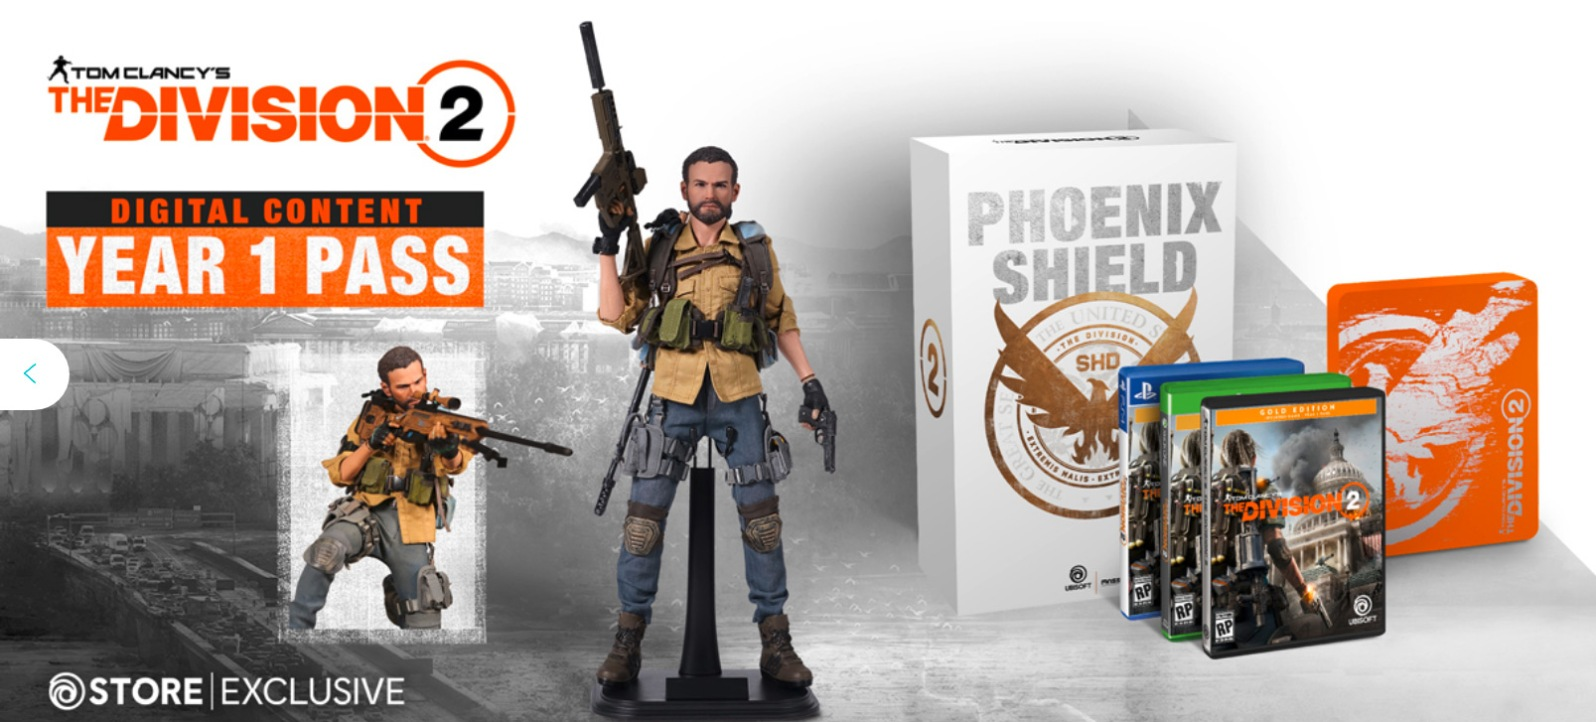 Quelle: blog.ubi.com - Tom Clancy's The Division 2 - Versionen